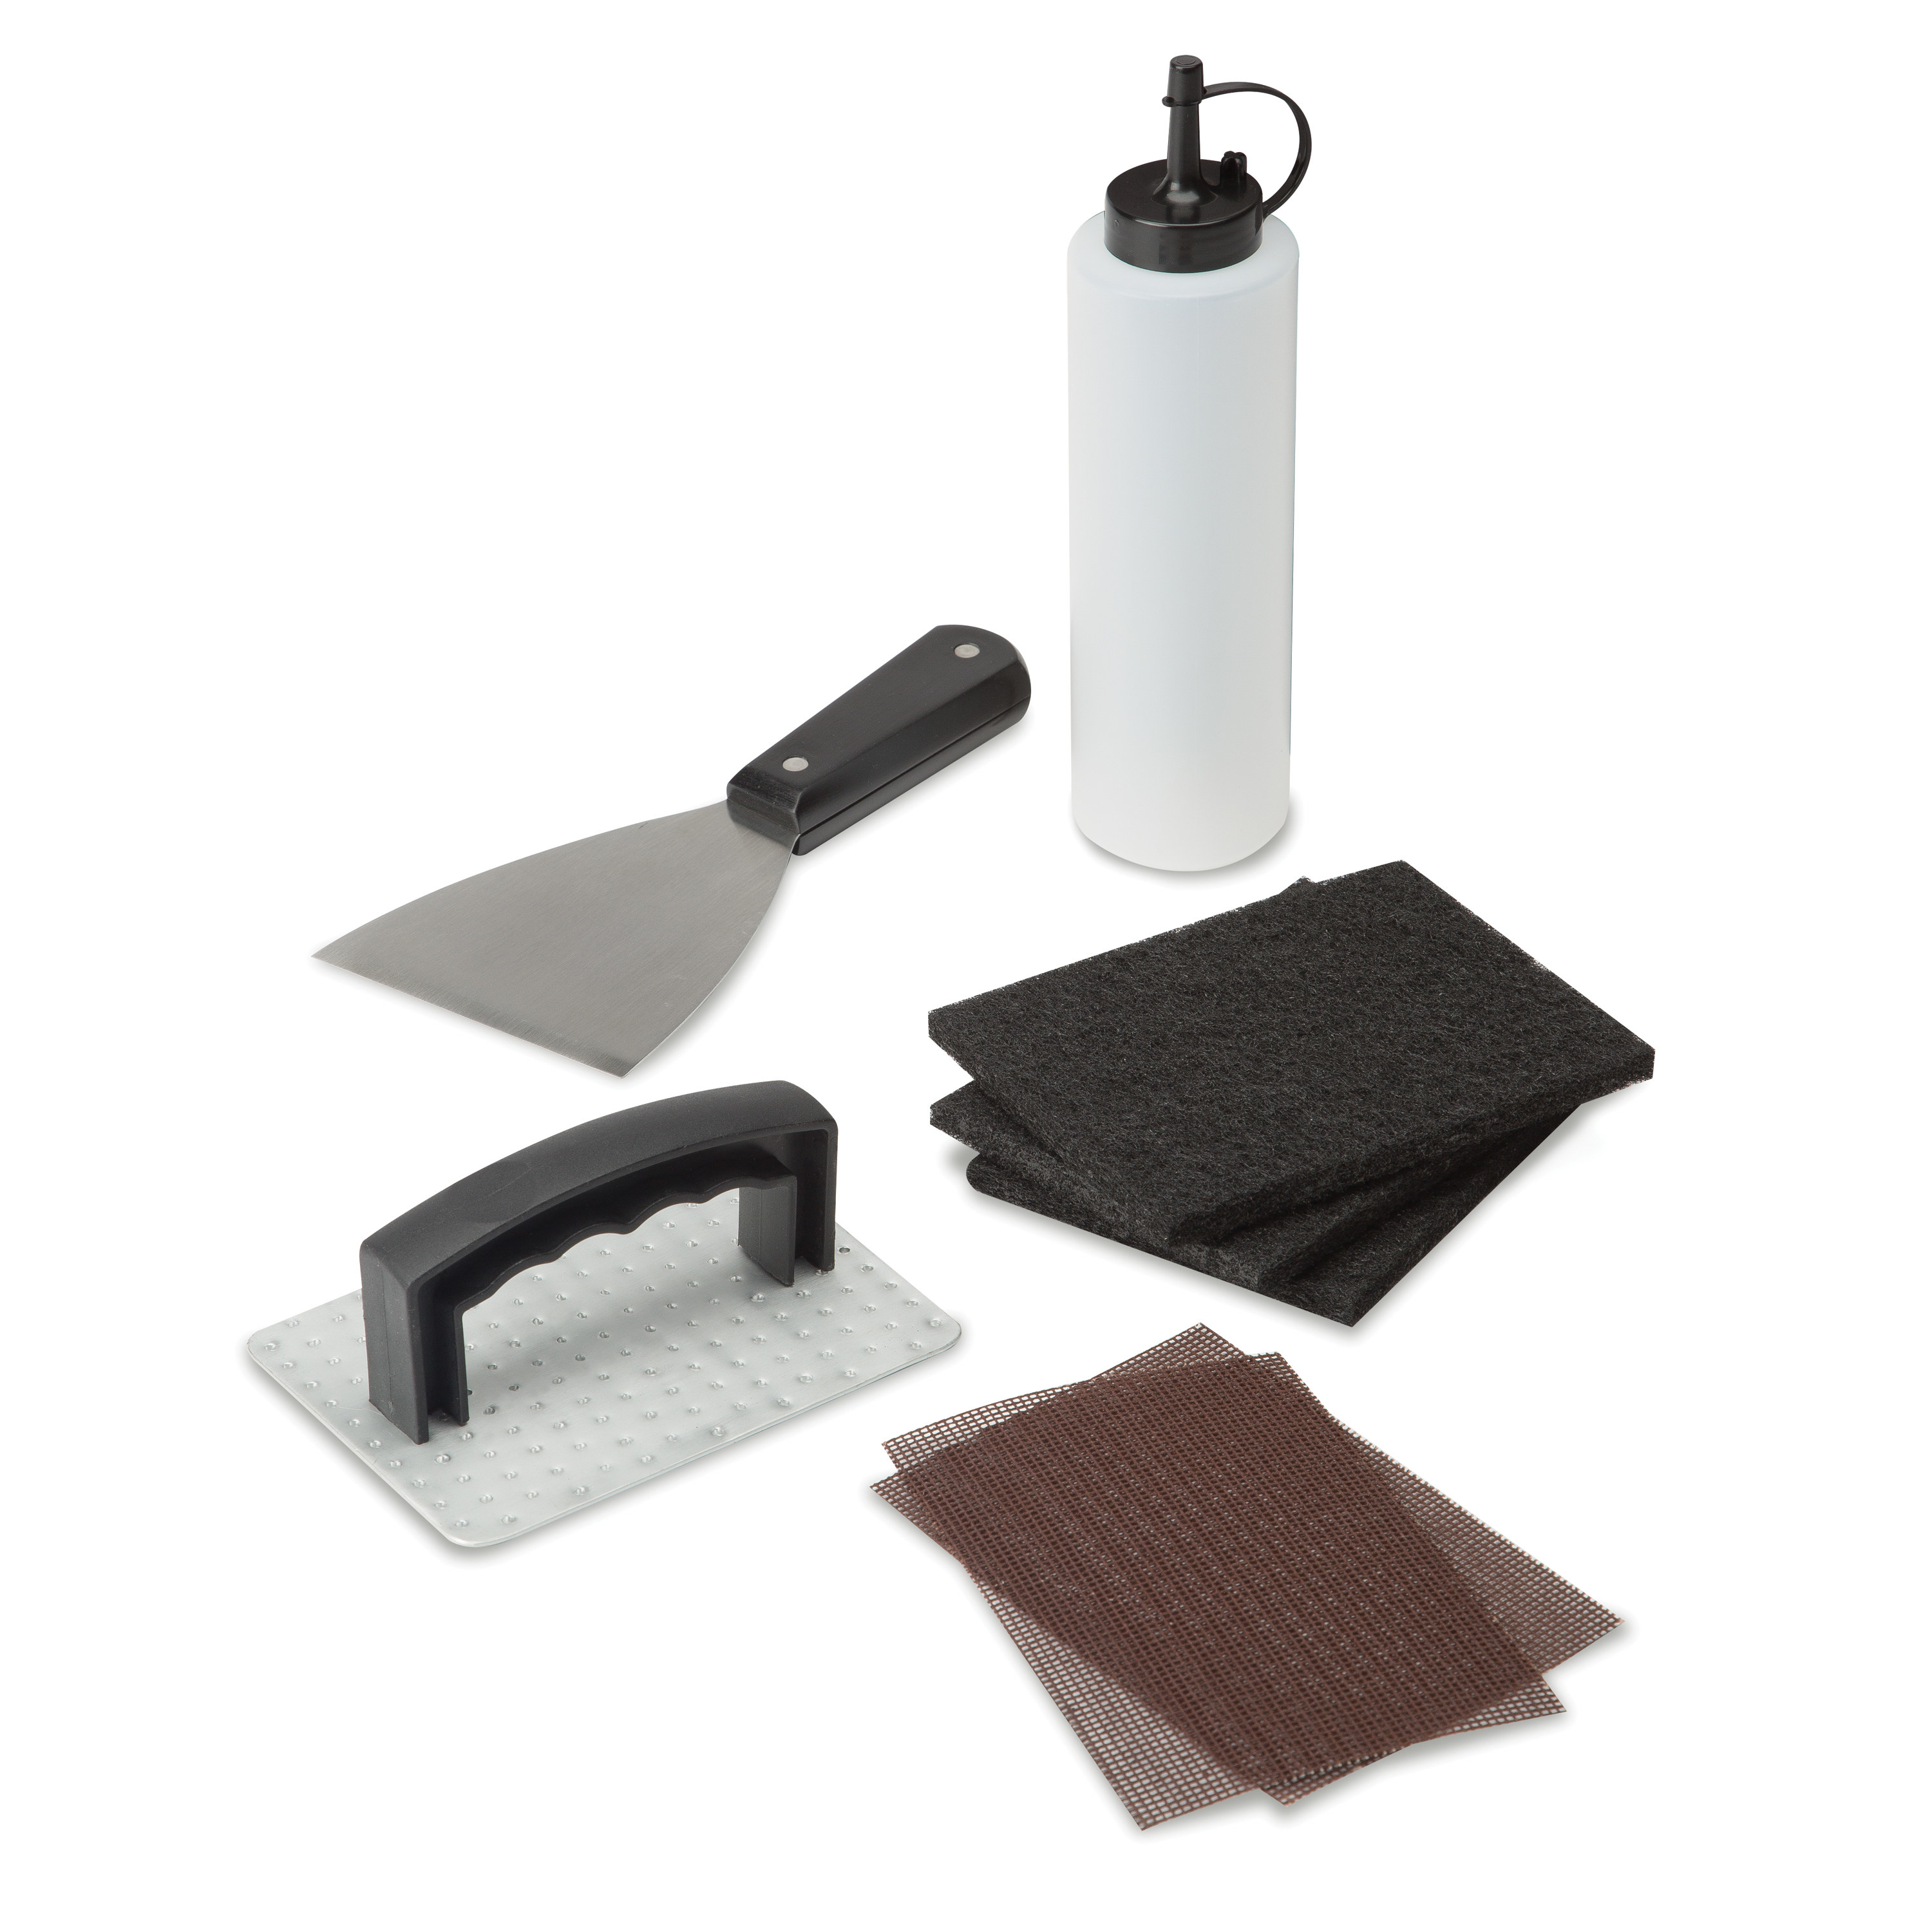 The griddle-cleaning kit